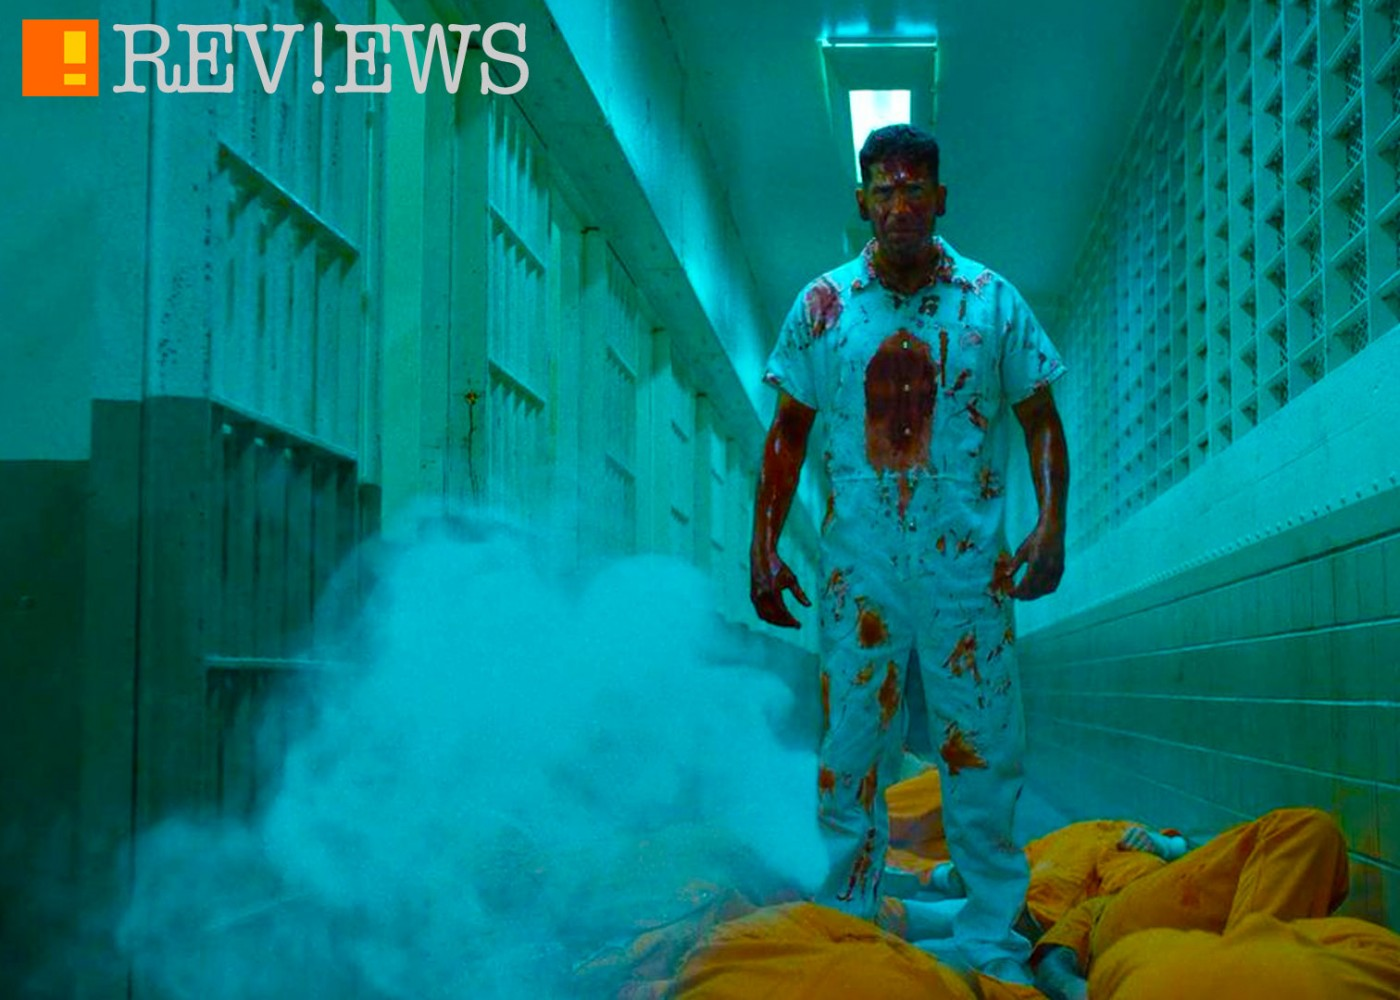 punisher, daredevil s2 e9, the action pixel, prison, reviews, tap reviews, the punisher, season 2, episode 9, seven minutes in heaven,king pin, wilson fisk,